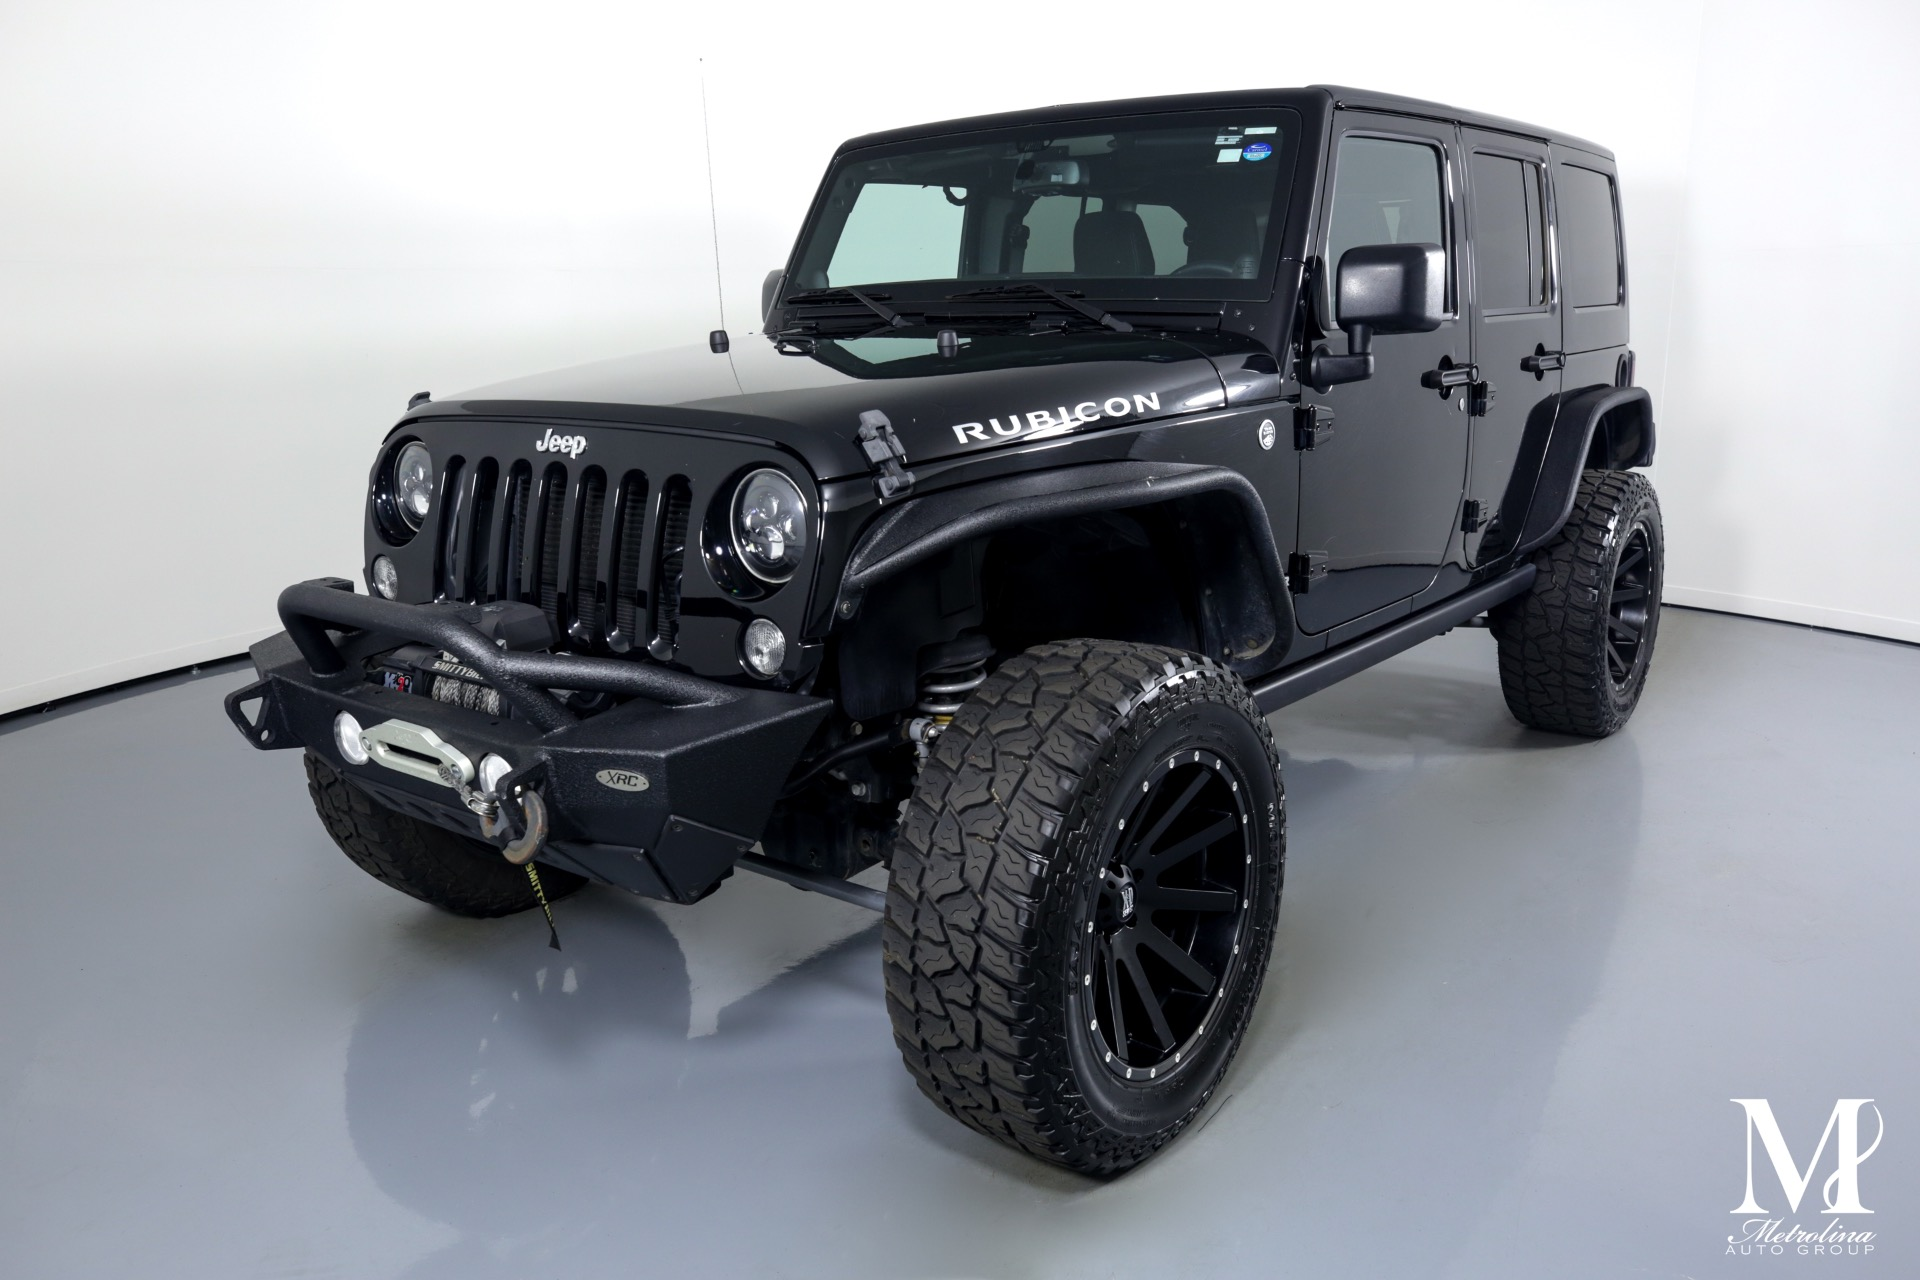 Used 2014 Jeep Wrangler Unlimited Rubicon for sale $44,996 at Metrolina Auto Group in Charlotte NC 28217 - 4